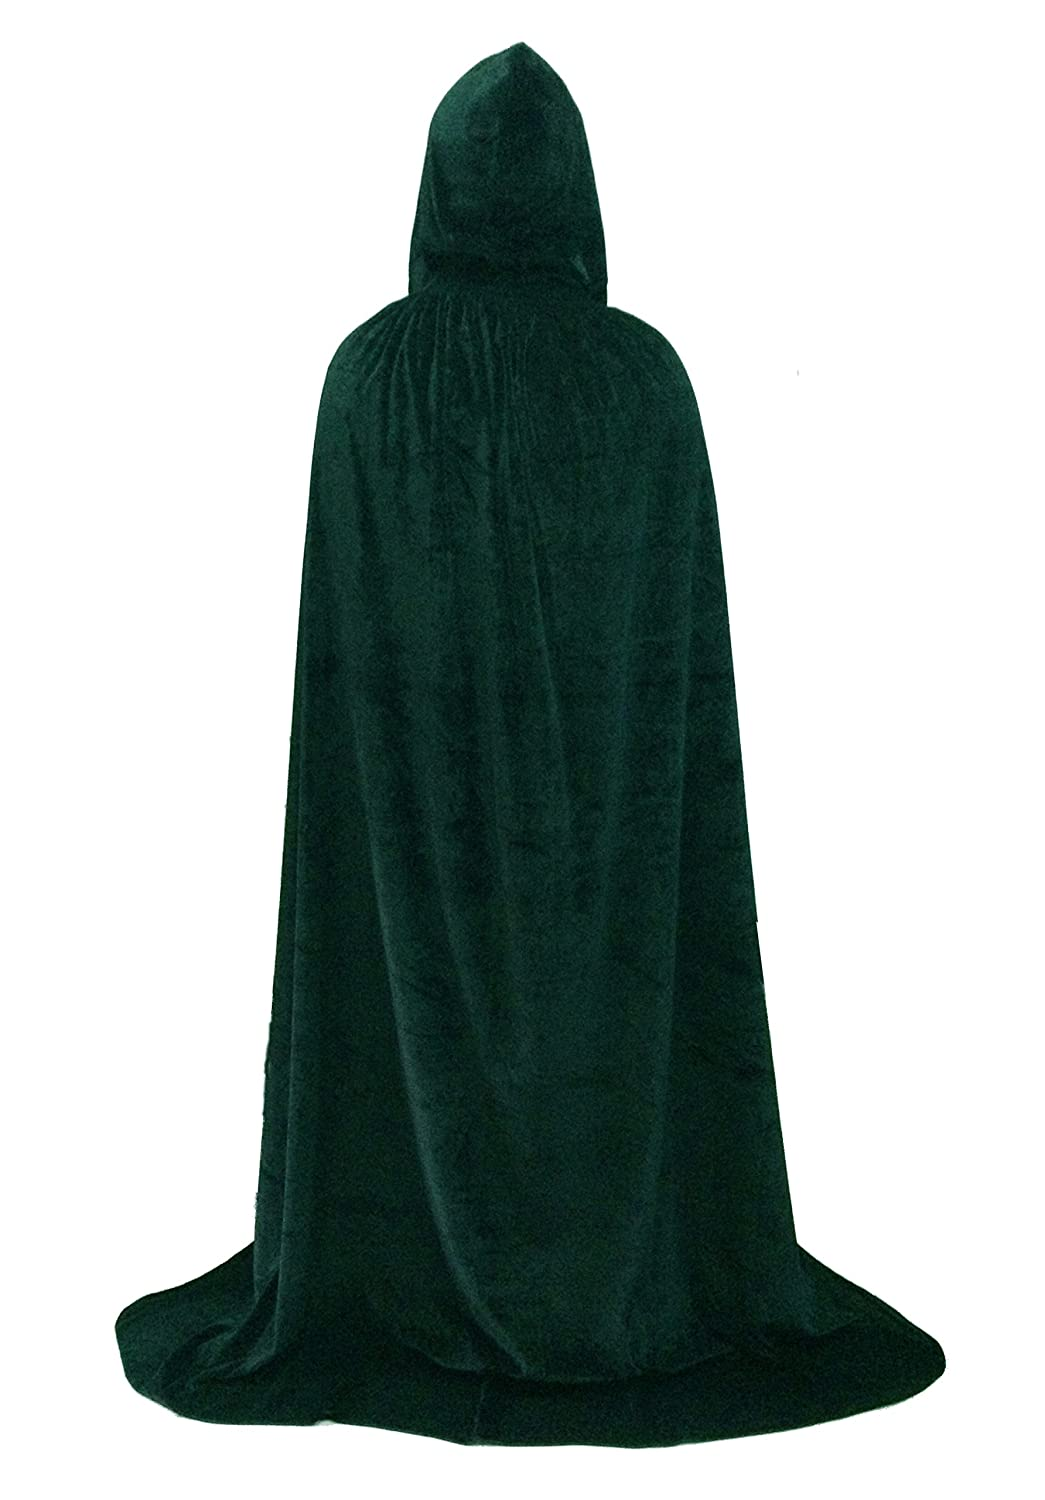 Beautifulfashionlife Unisex Hooded Cloak Role Cape Family Robes Costumes Full Length Hh12